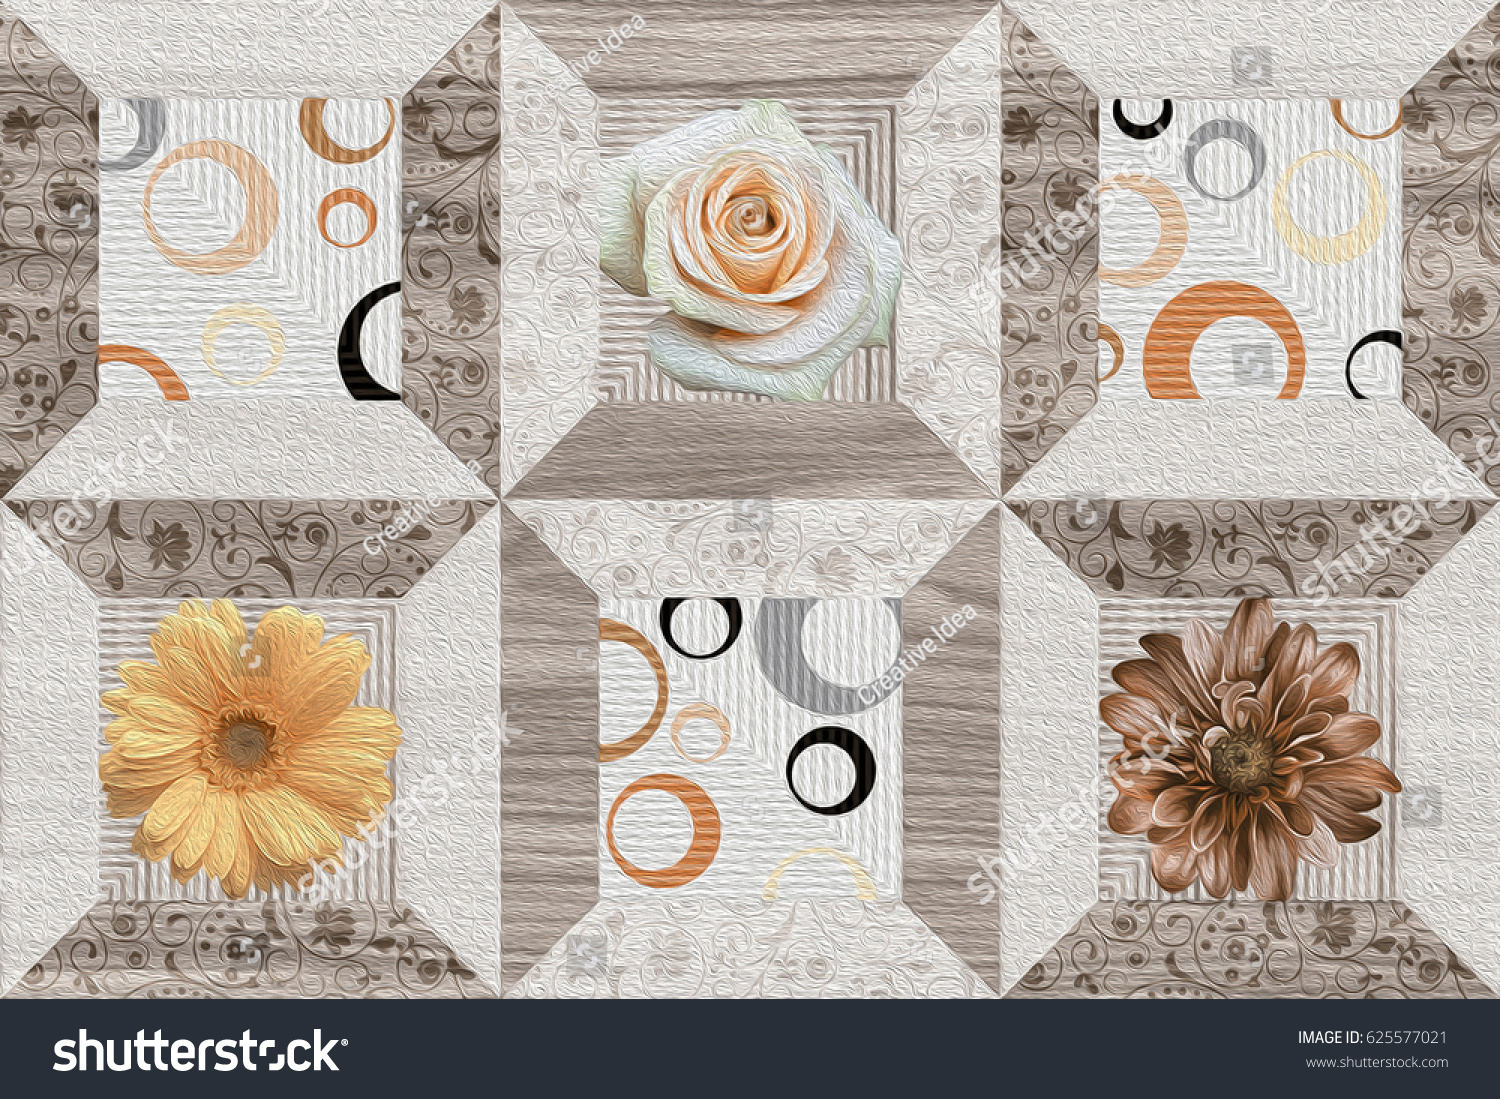 Wall floor tiles design pattern background stock illustration wall floor tiles design pattern background stock illustration 625577021 shutterstock dailygadgetfo Image collections